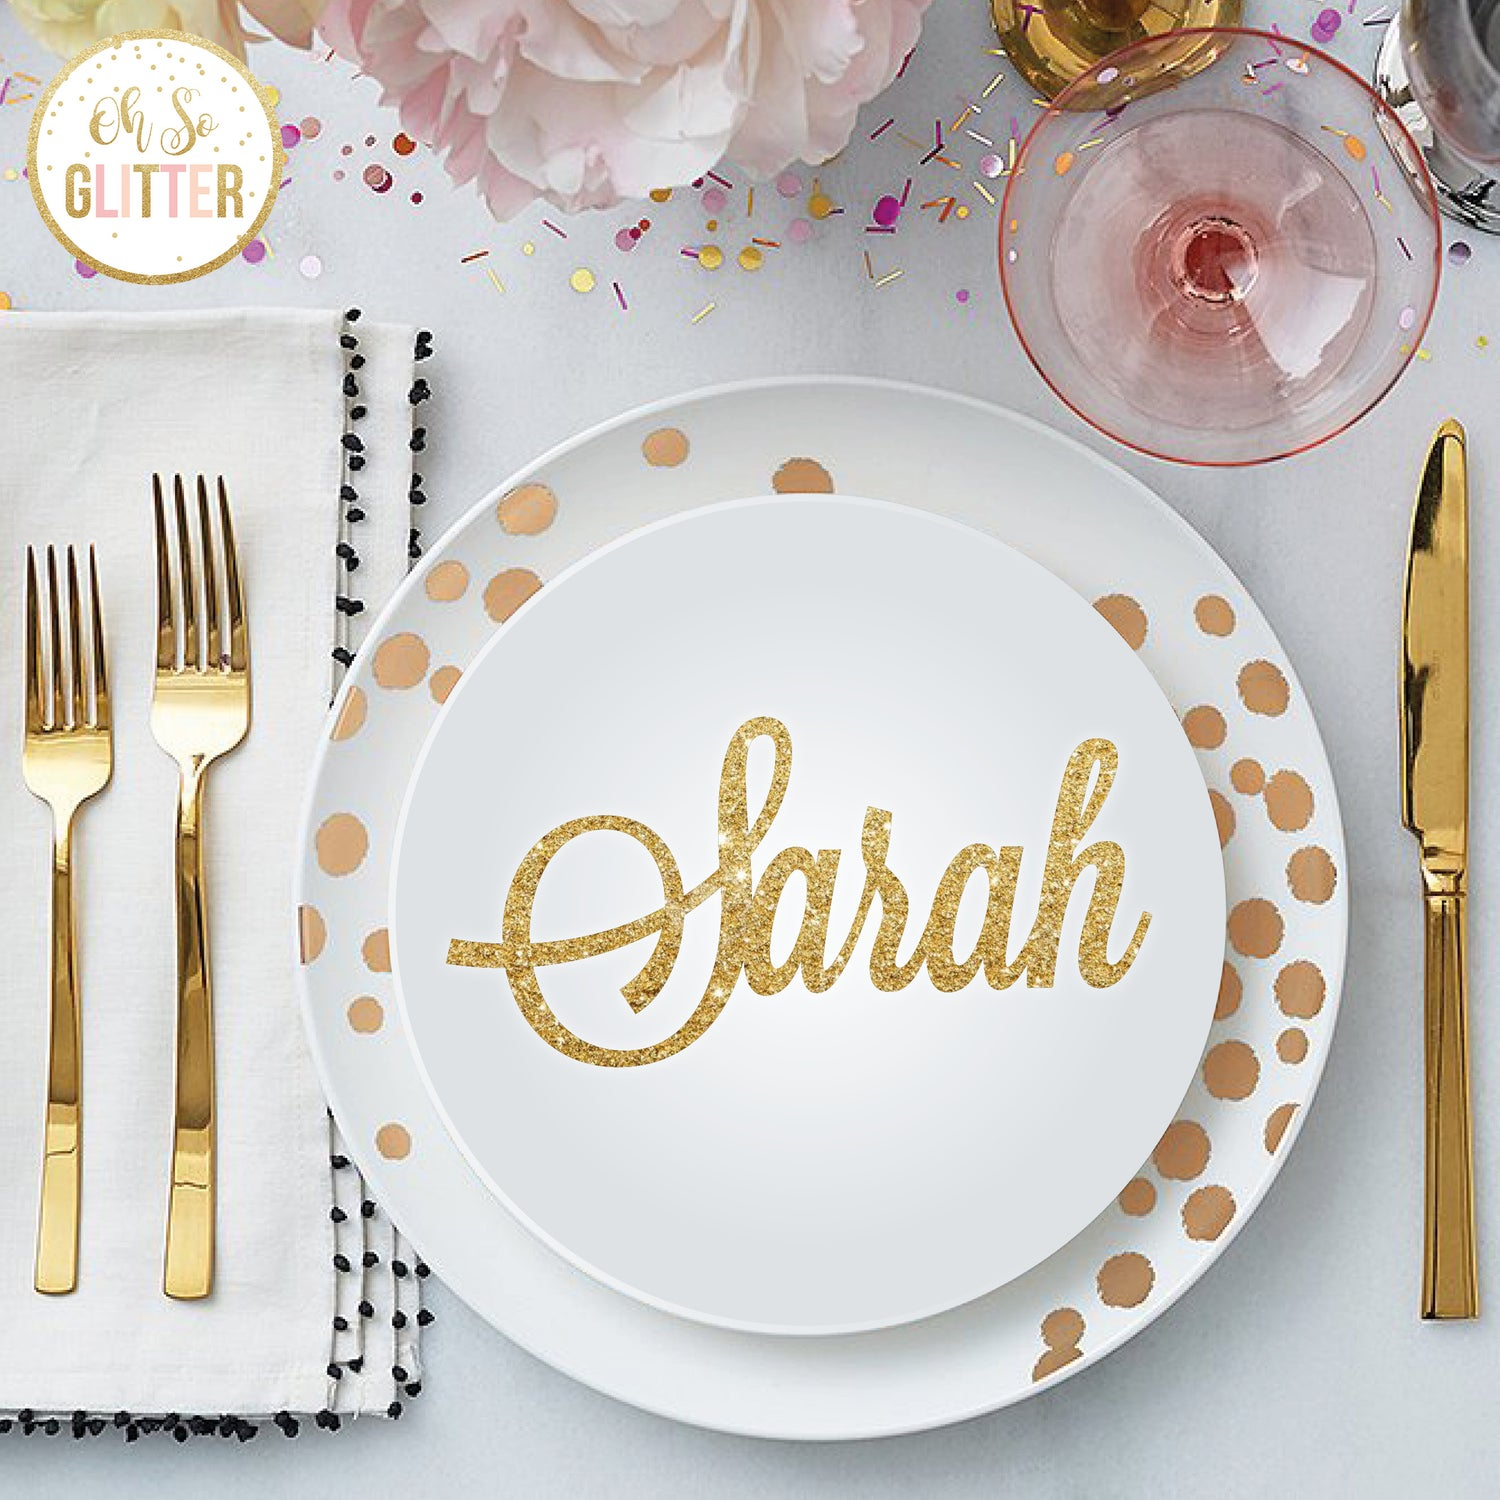 Image of Customised Name Place settings